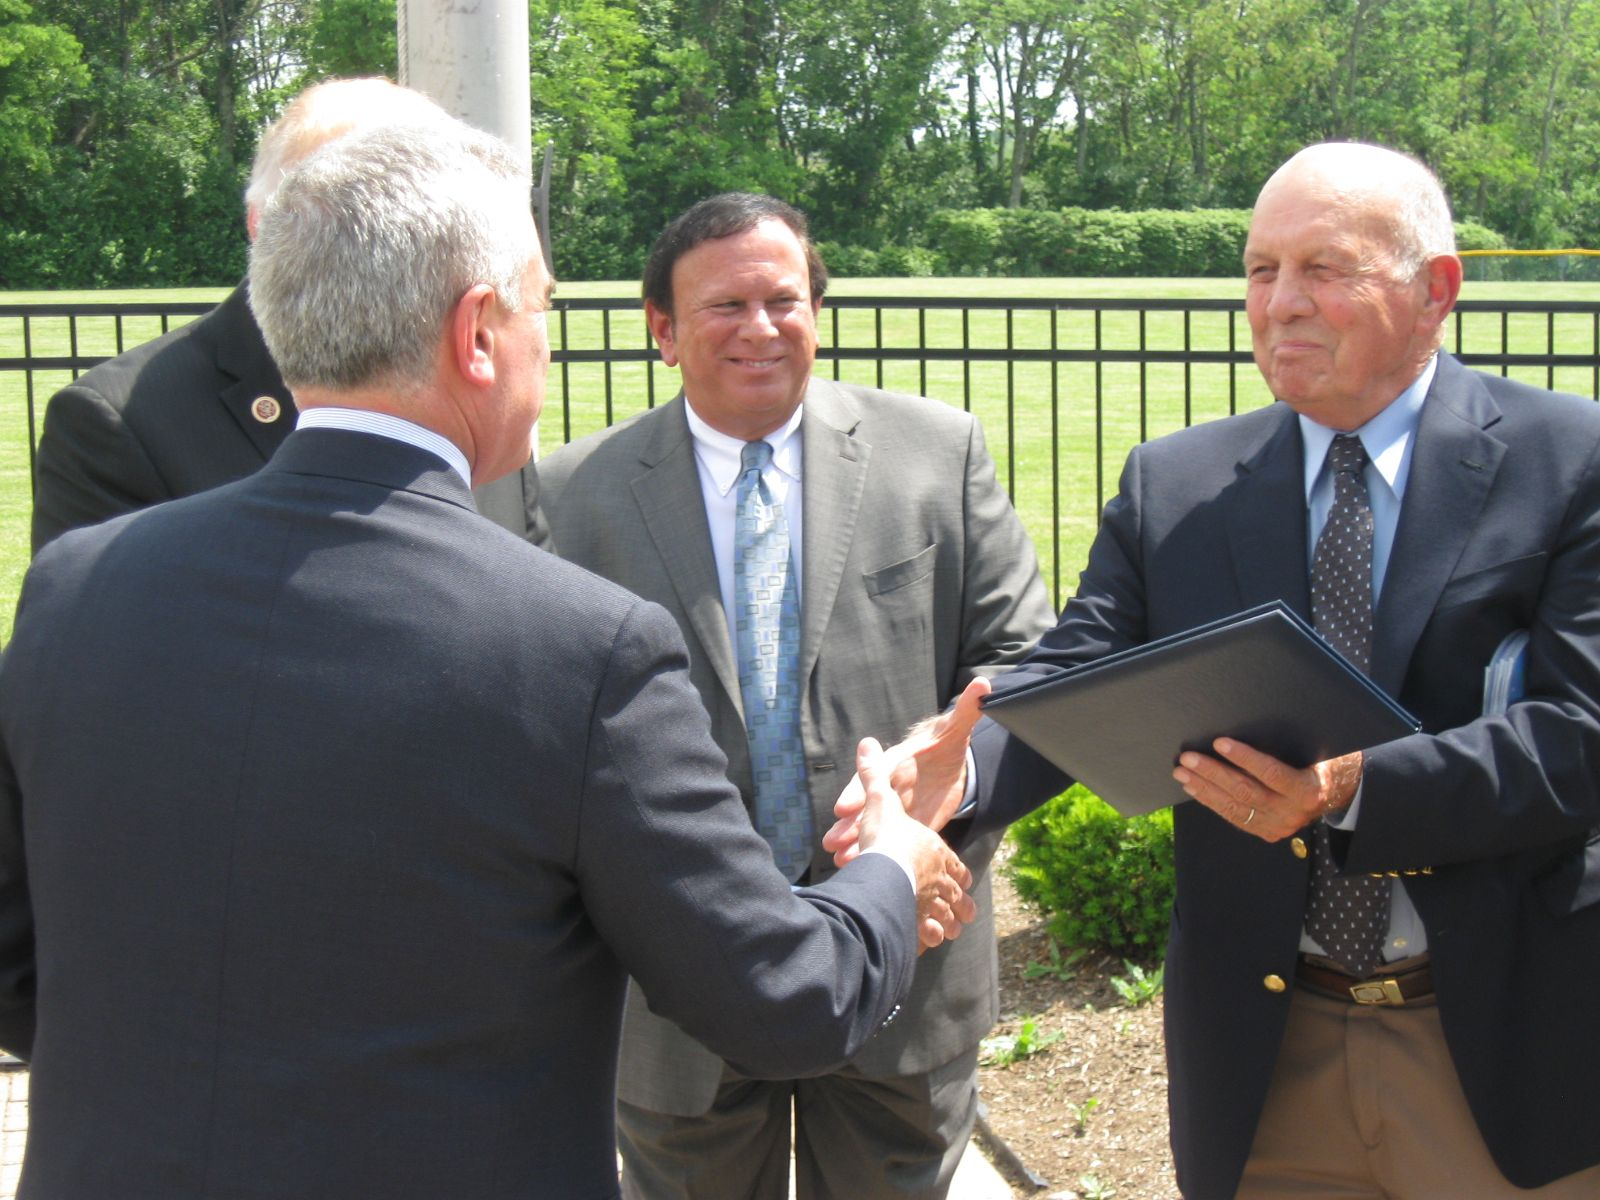 Image of Congressman Brad Wenstrup presented the Proclamation to Don Griffin (Nephew of Tom Griffin) with Trustee Tony Rosiello looking on Veterans Park